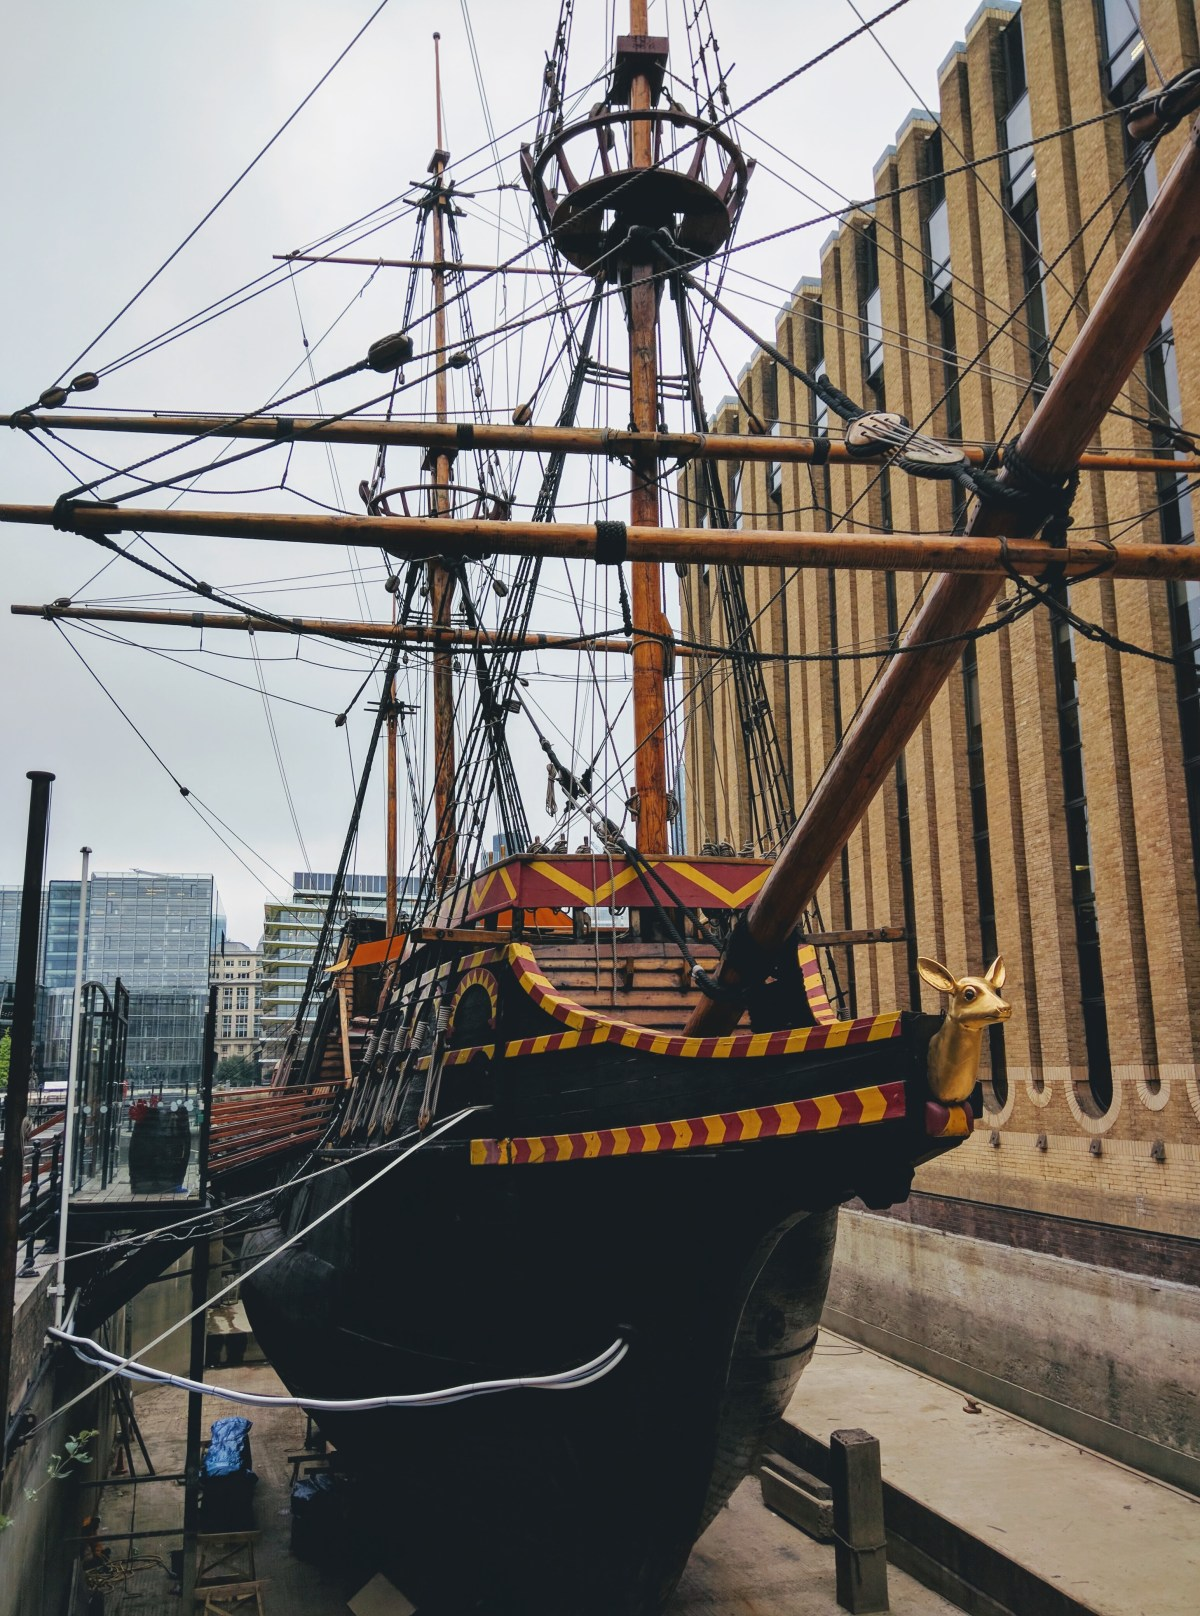 Golden Hinde II is the replica of Sir Francis Drake's ship.